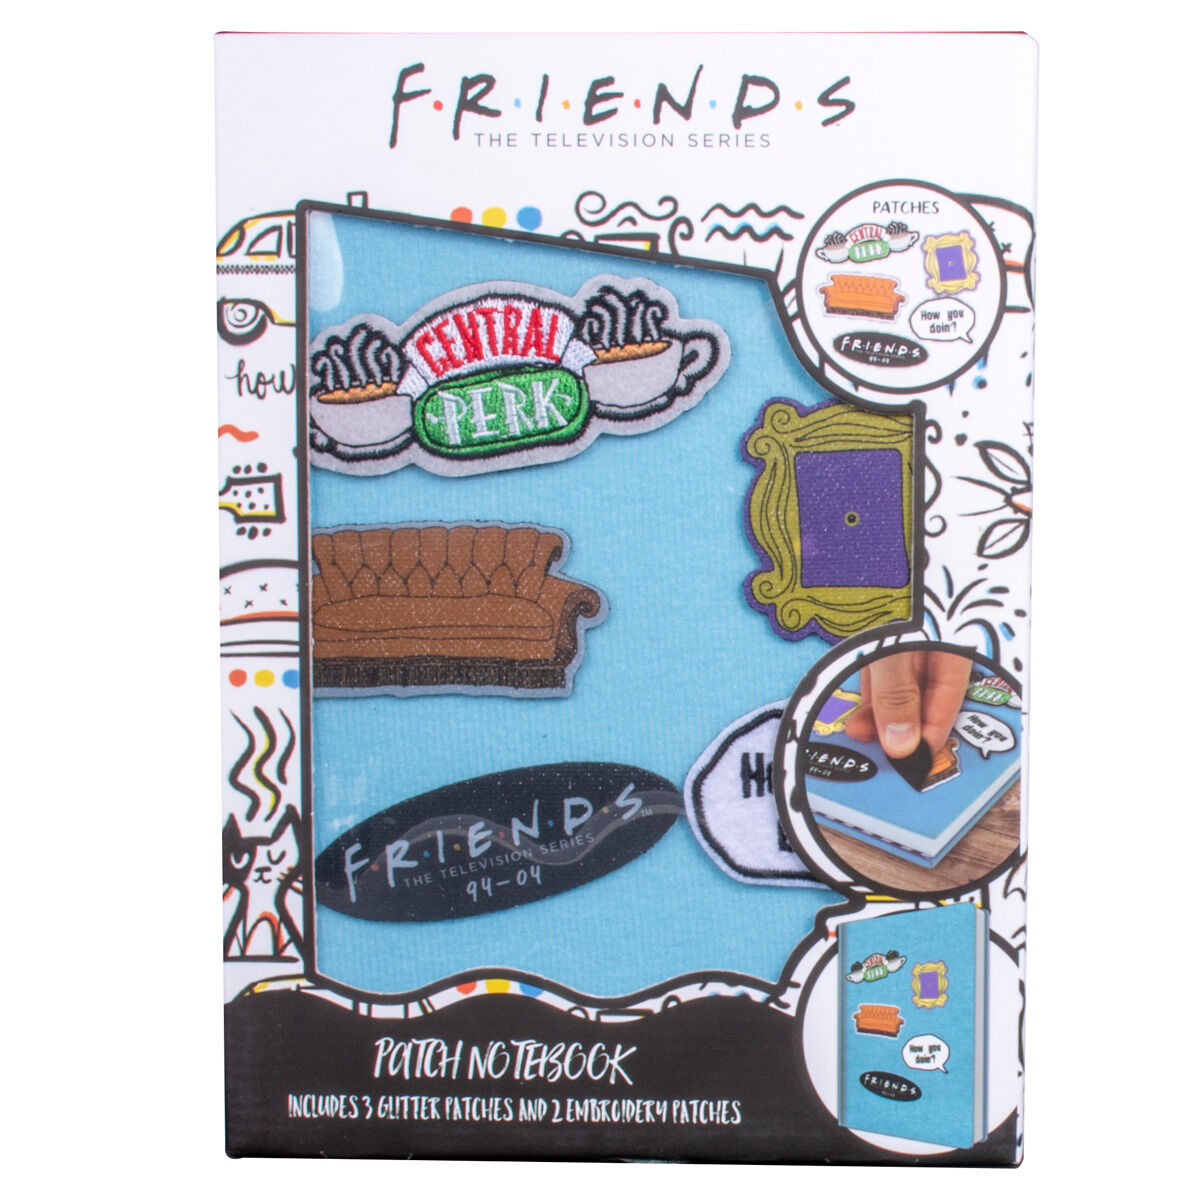 Cuaderno parches velcro Friends 5060718141742